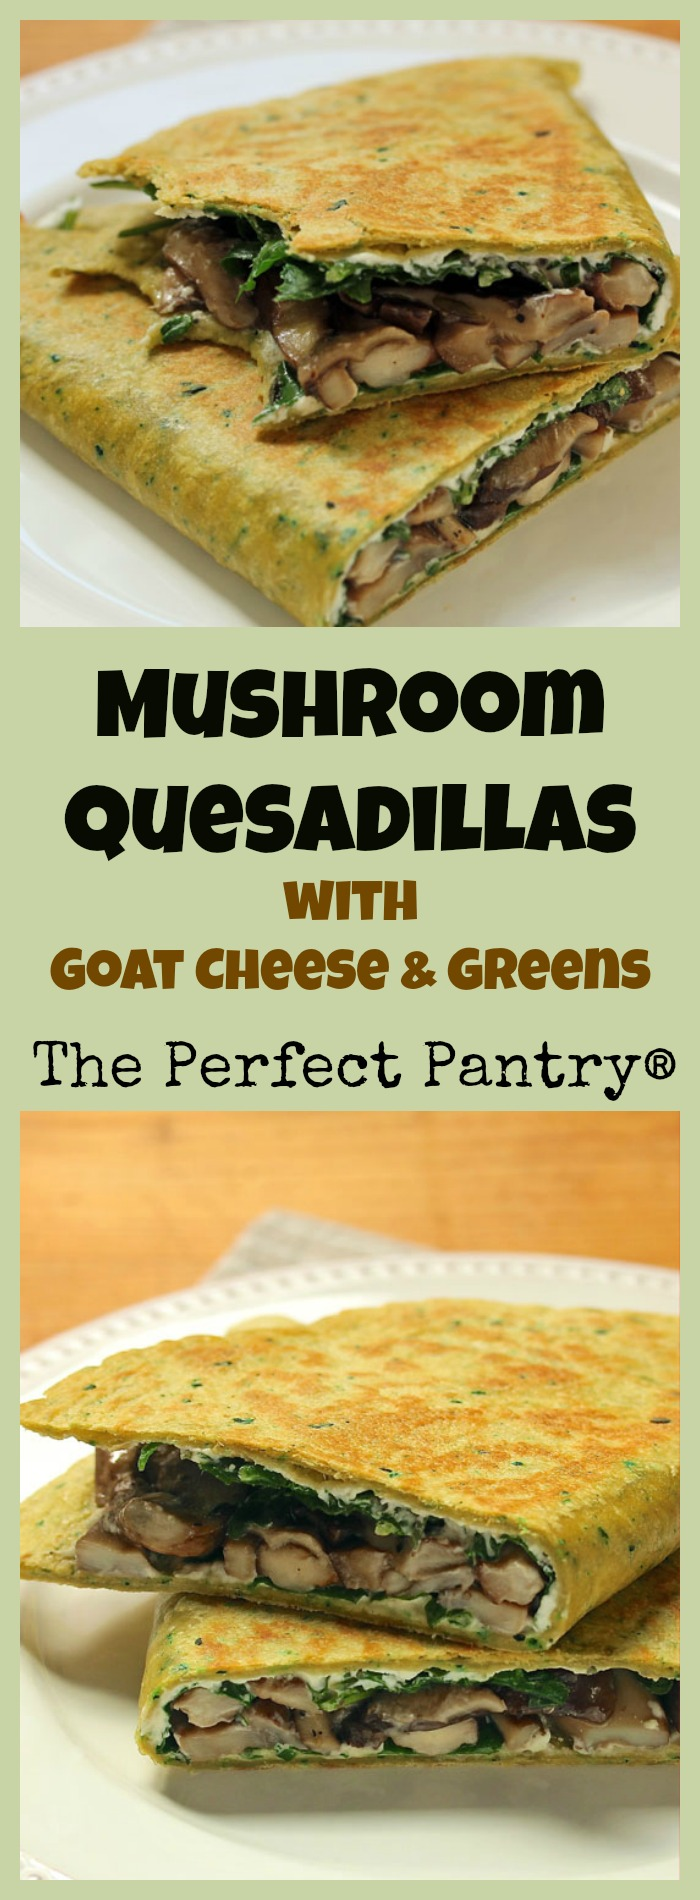 Mushroom quesadillas filled with melty goat cheese and your favorite dark leafy greens. #vegetarian [ThePerfectPantry.com]